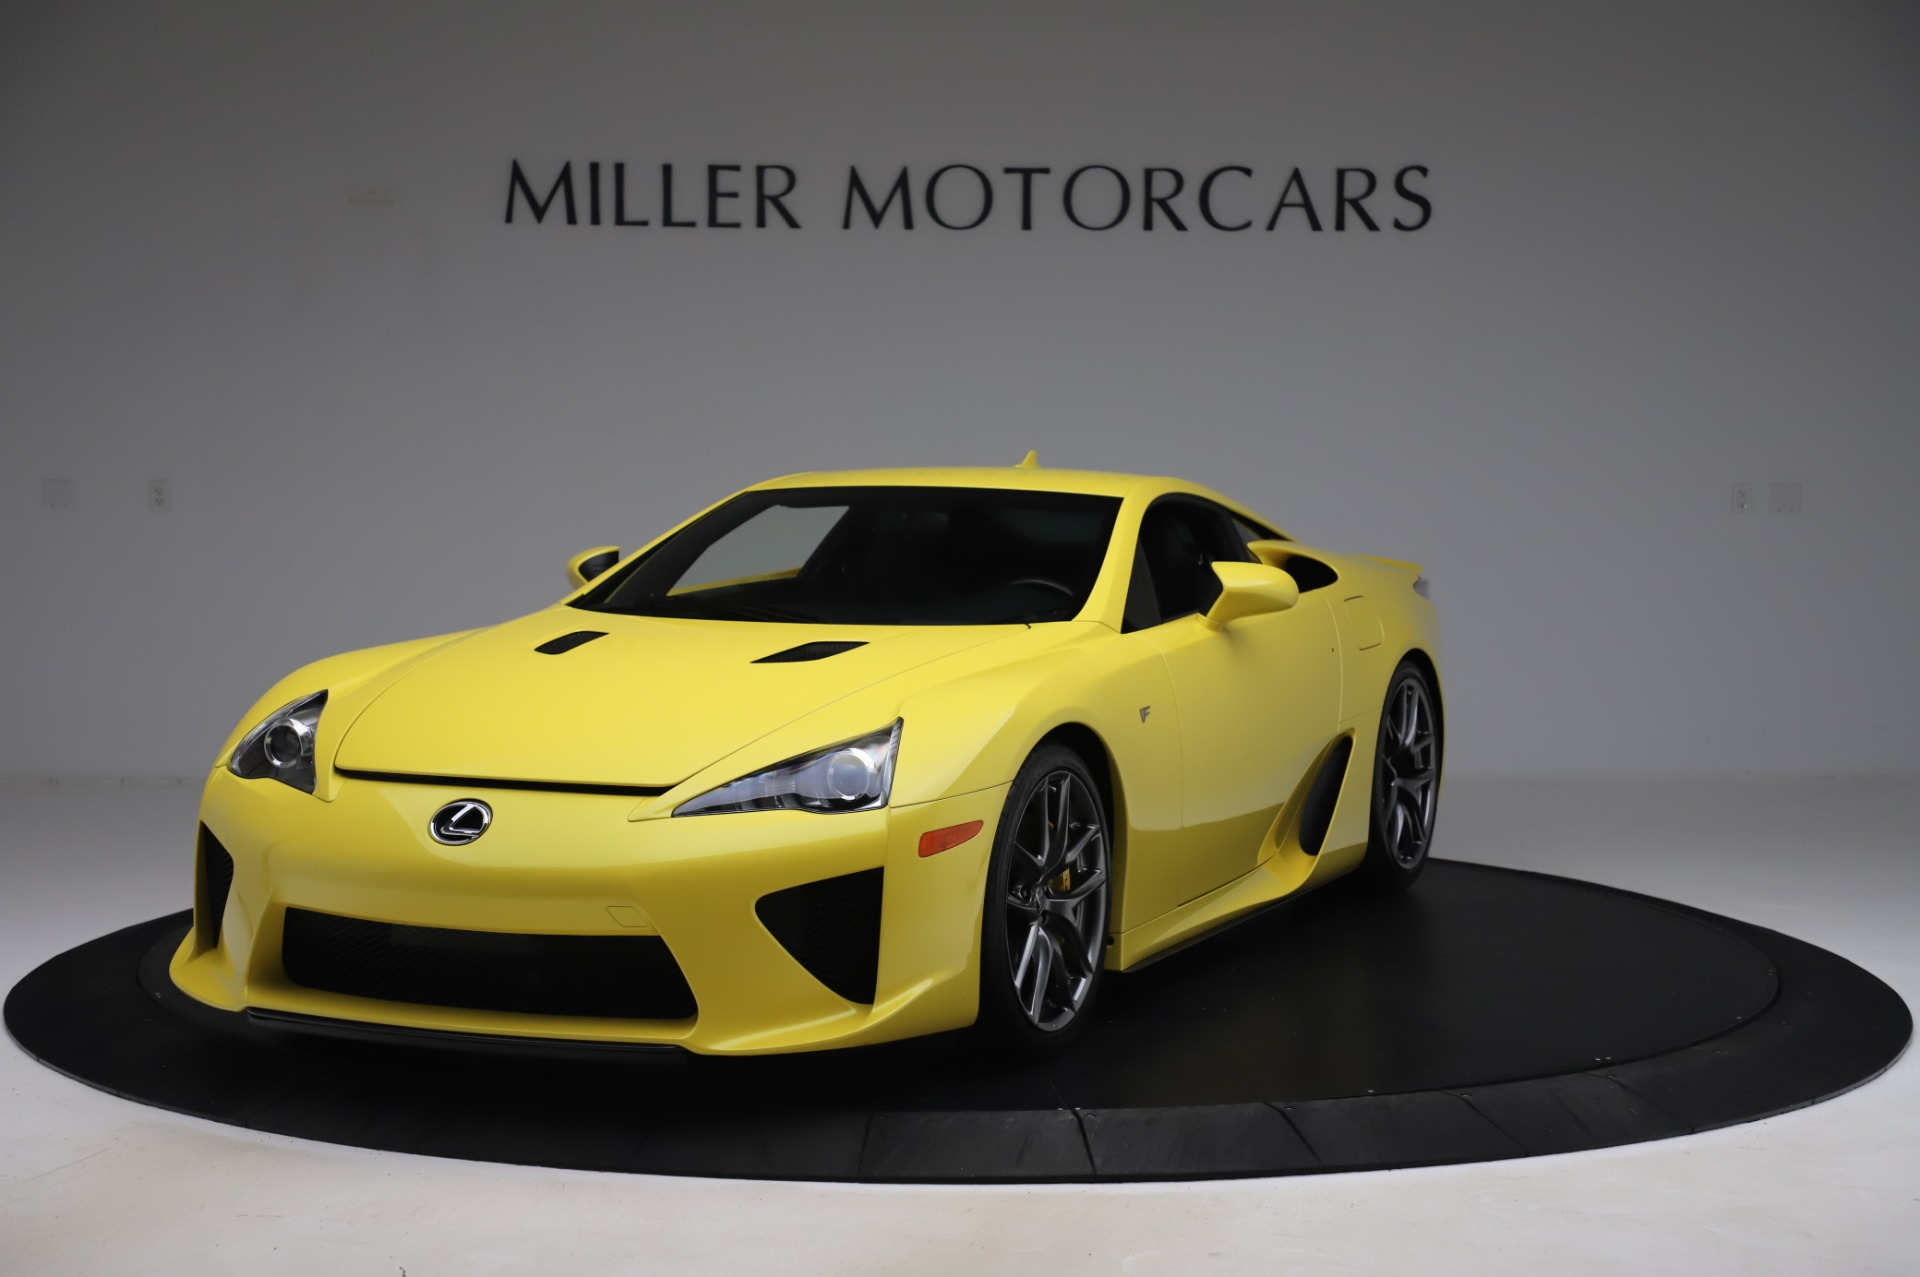 Used 2012 Lexus LFA for sale $509,900 at McLaren Greenwich in Greenwich CT 06830 1